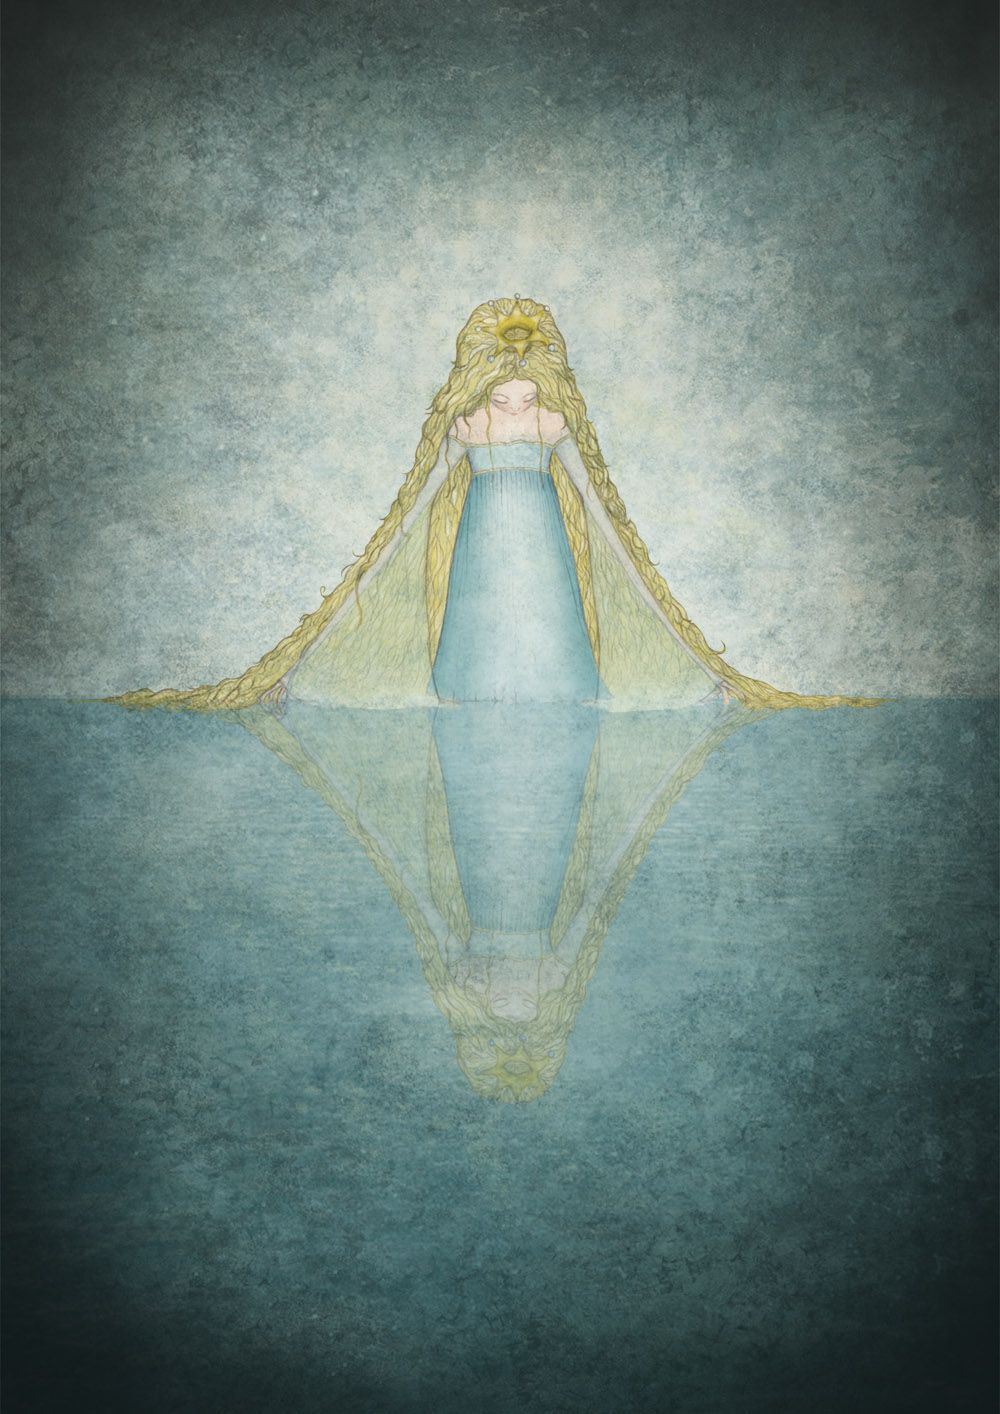 """Sjöprinsessan"" (""Princess of the Lake"") by Maja Lindberg (© 2012)"